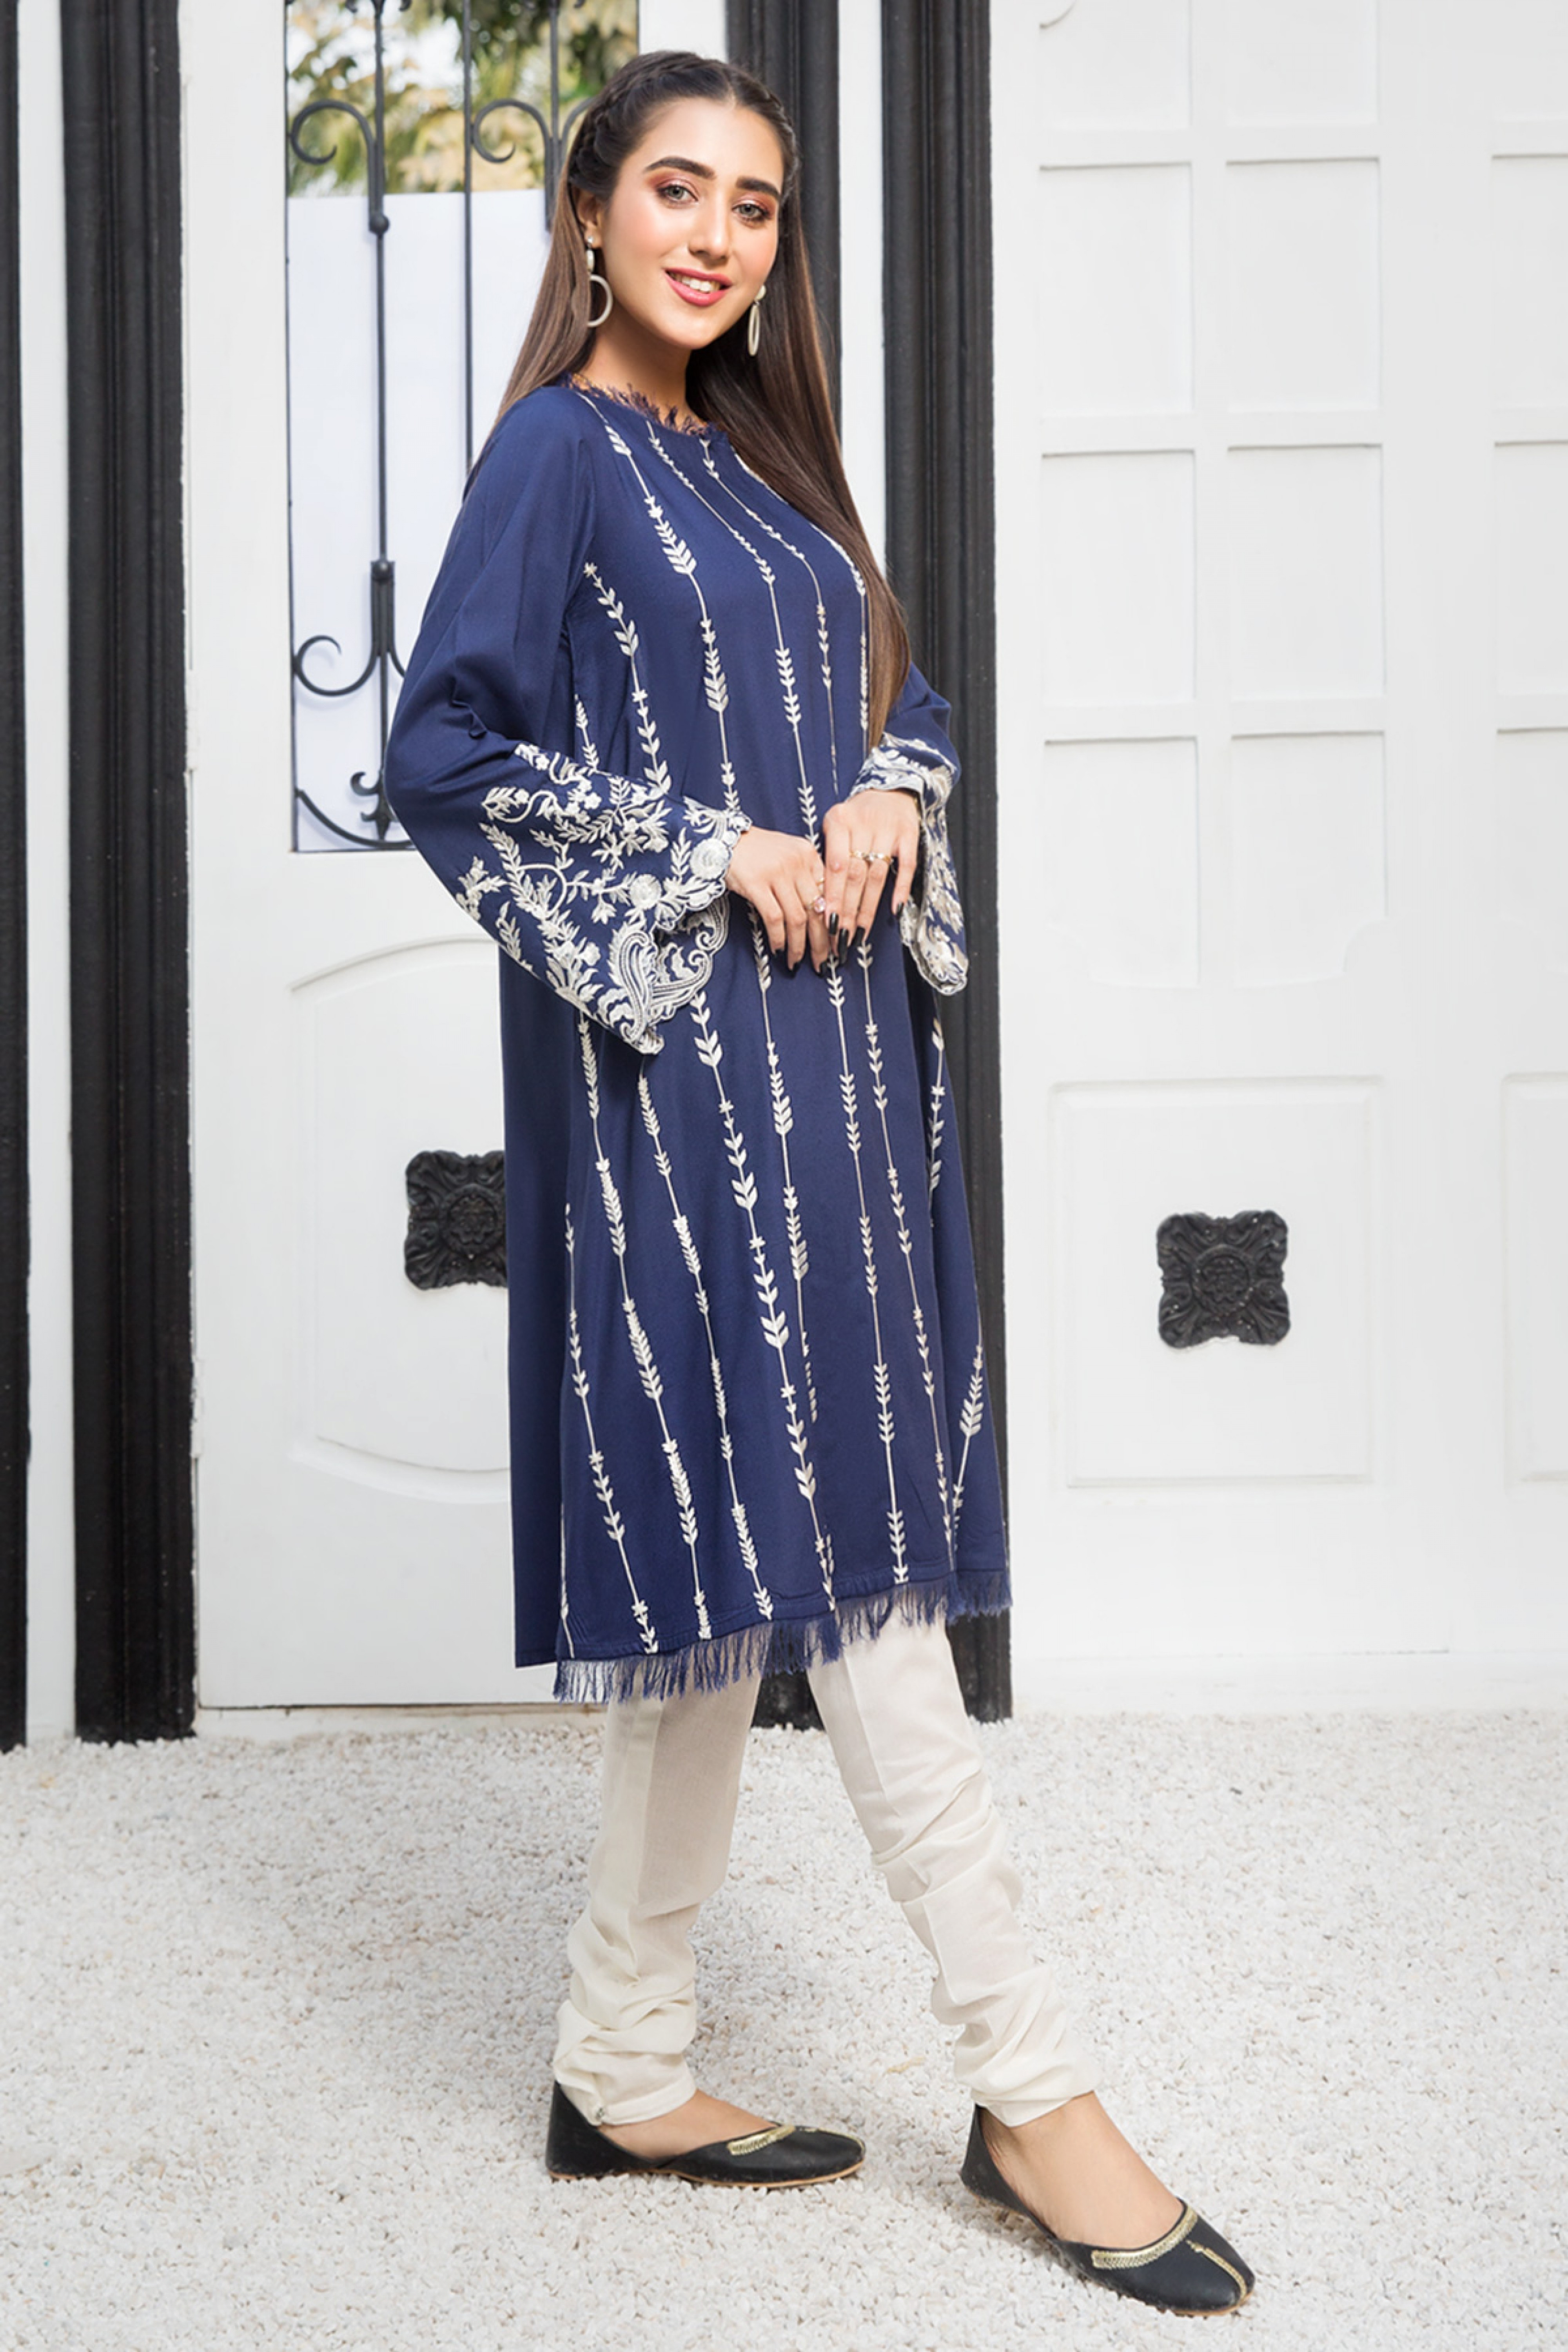 BLUE FLAMES(Embroidered Frock)